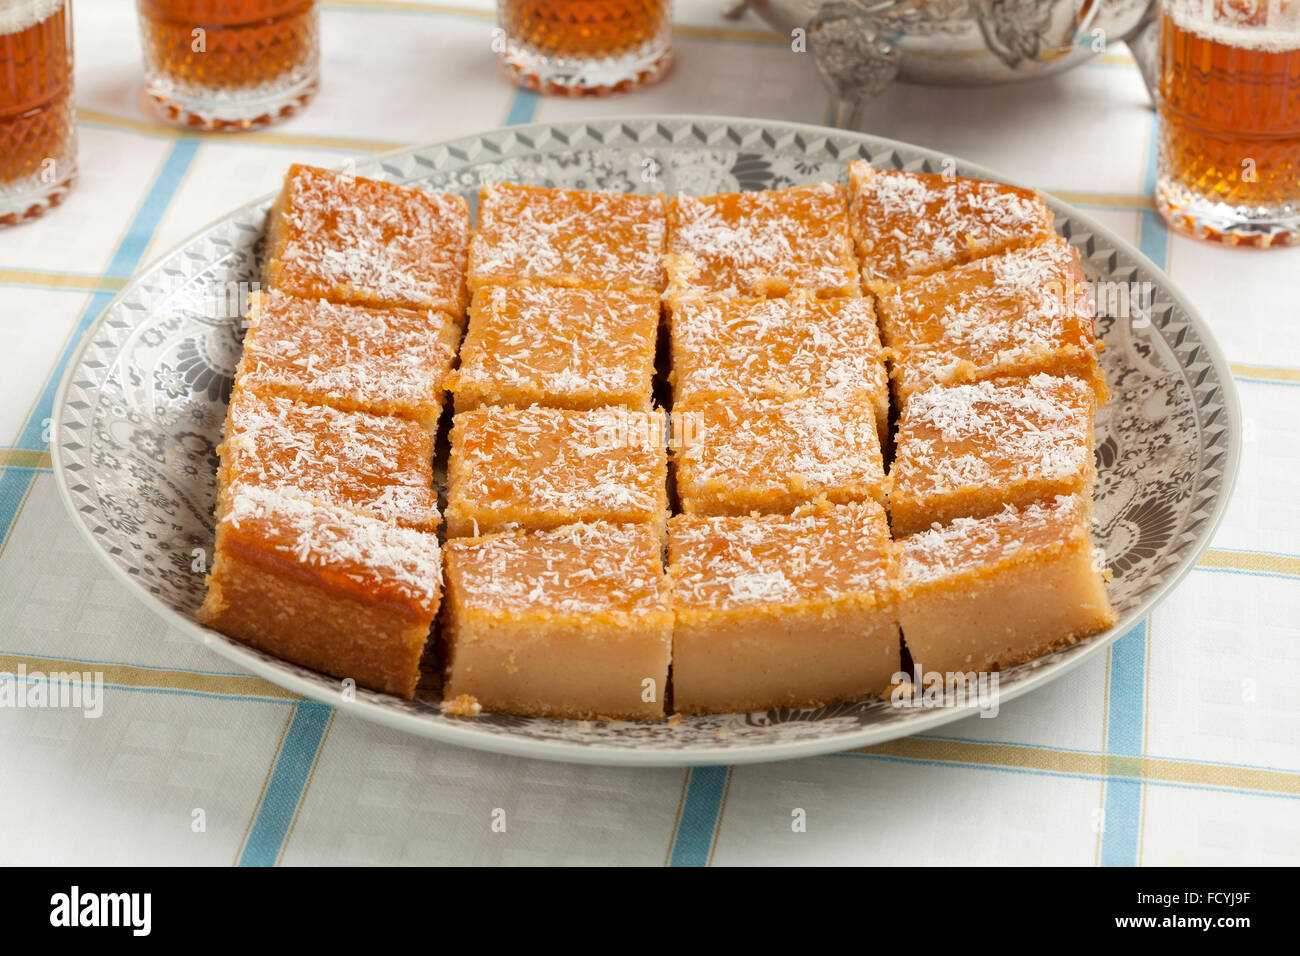 Fresh baked Moroccan yogurt cake cut into pieces and tea for visitors - Stock Image